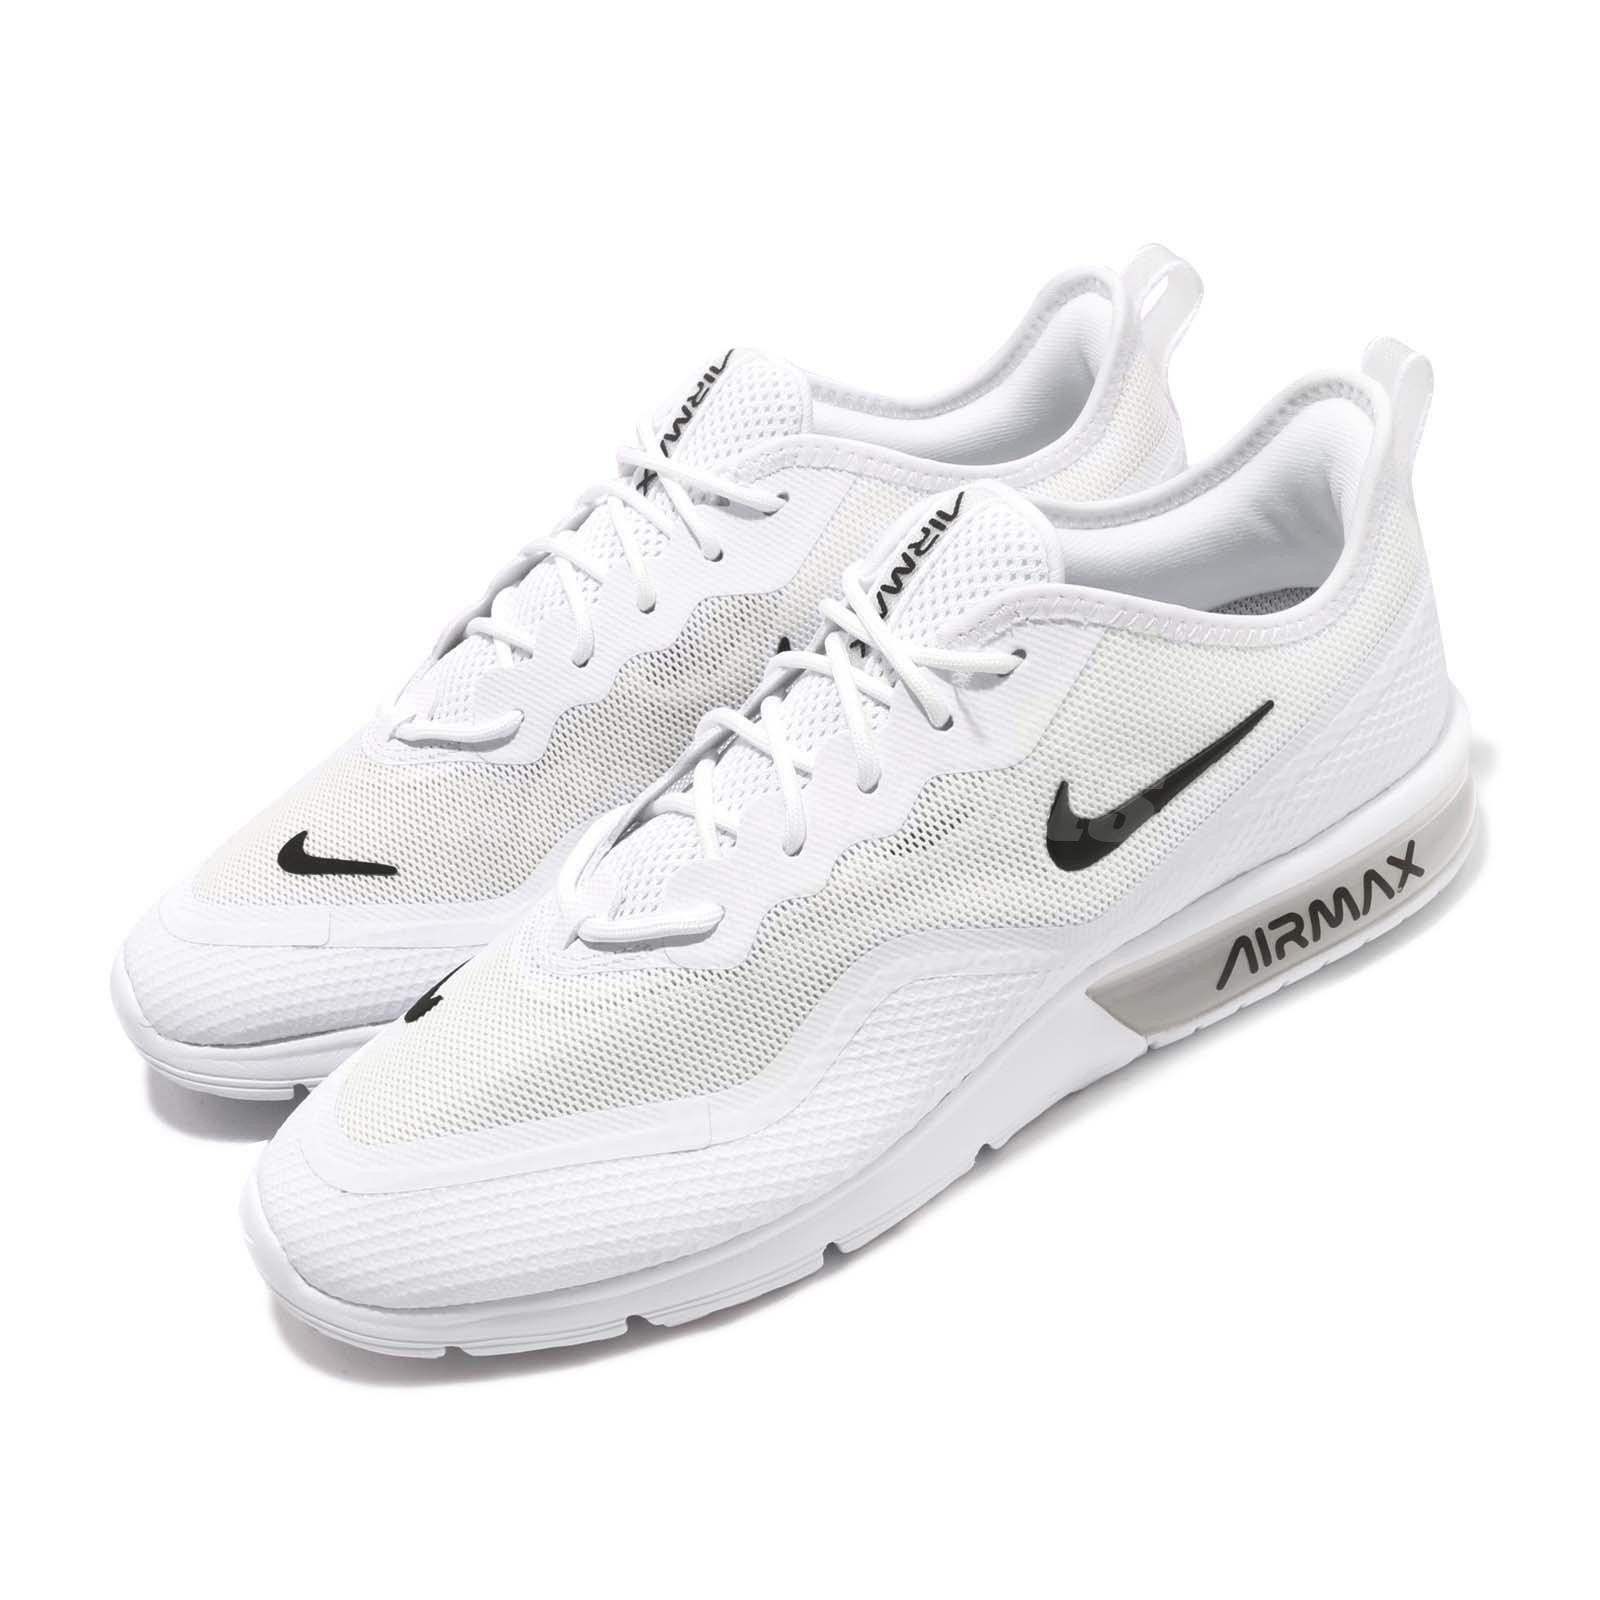 ef98351ddf Details about Nike Air Max Sequent 4.5 White Black Men Running Shoes  Sneakers BQ8822-100